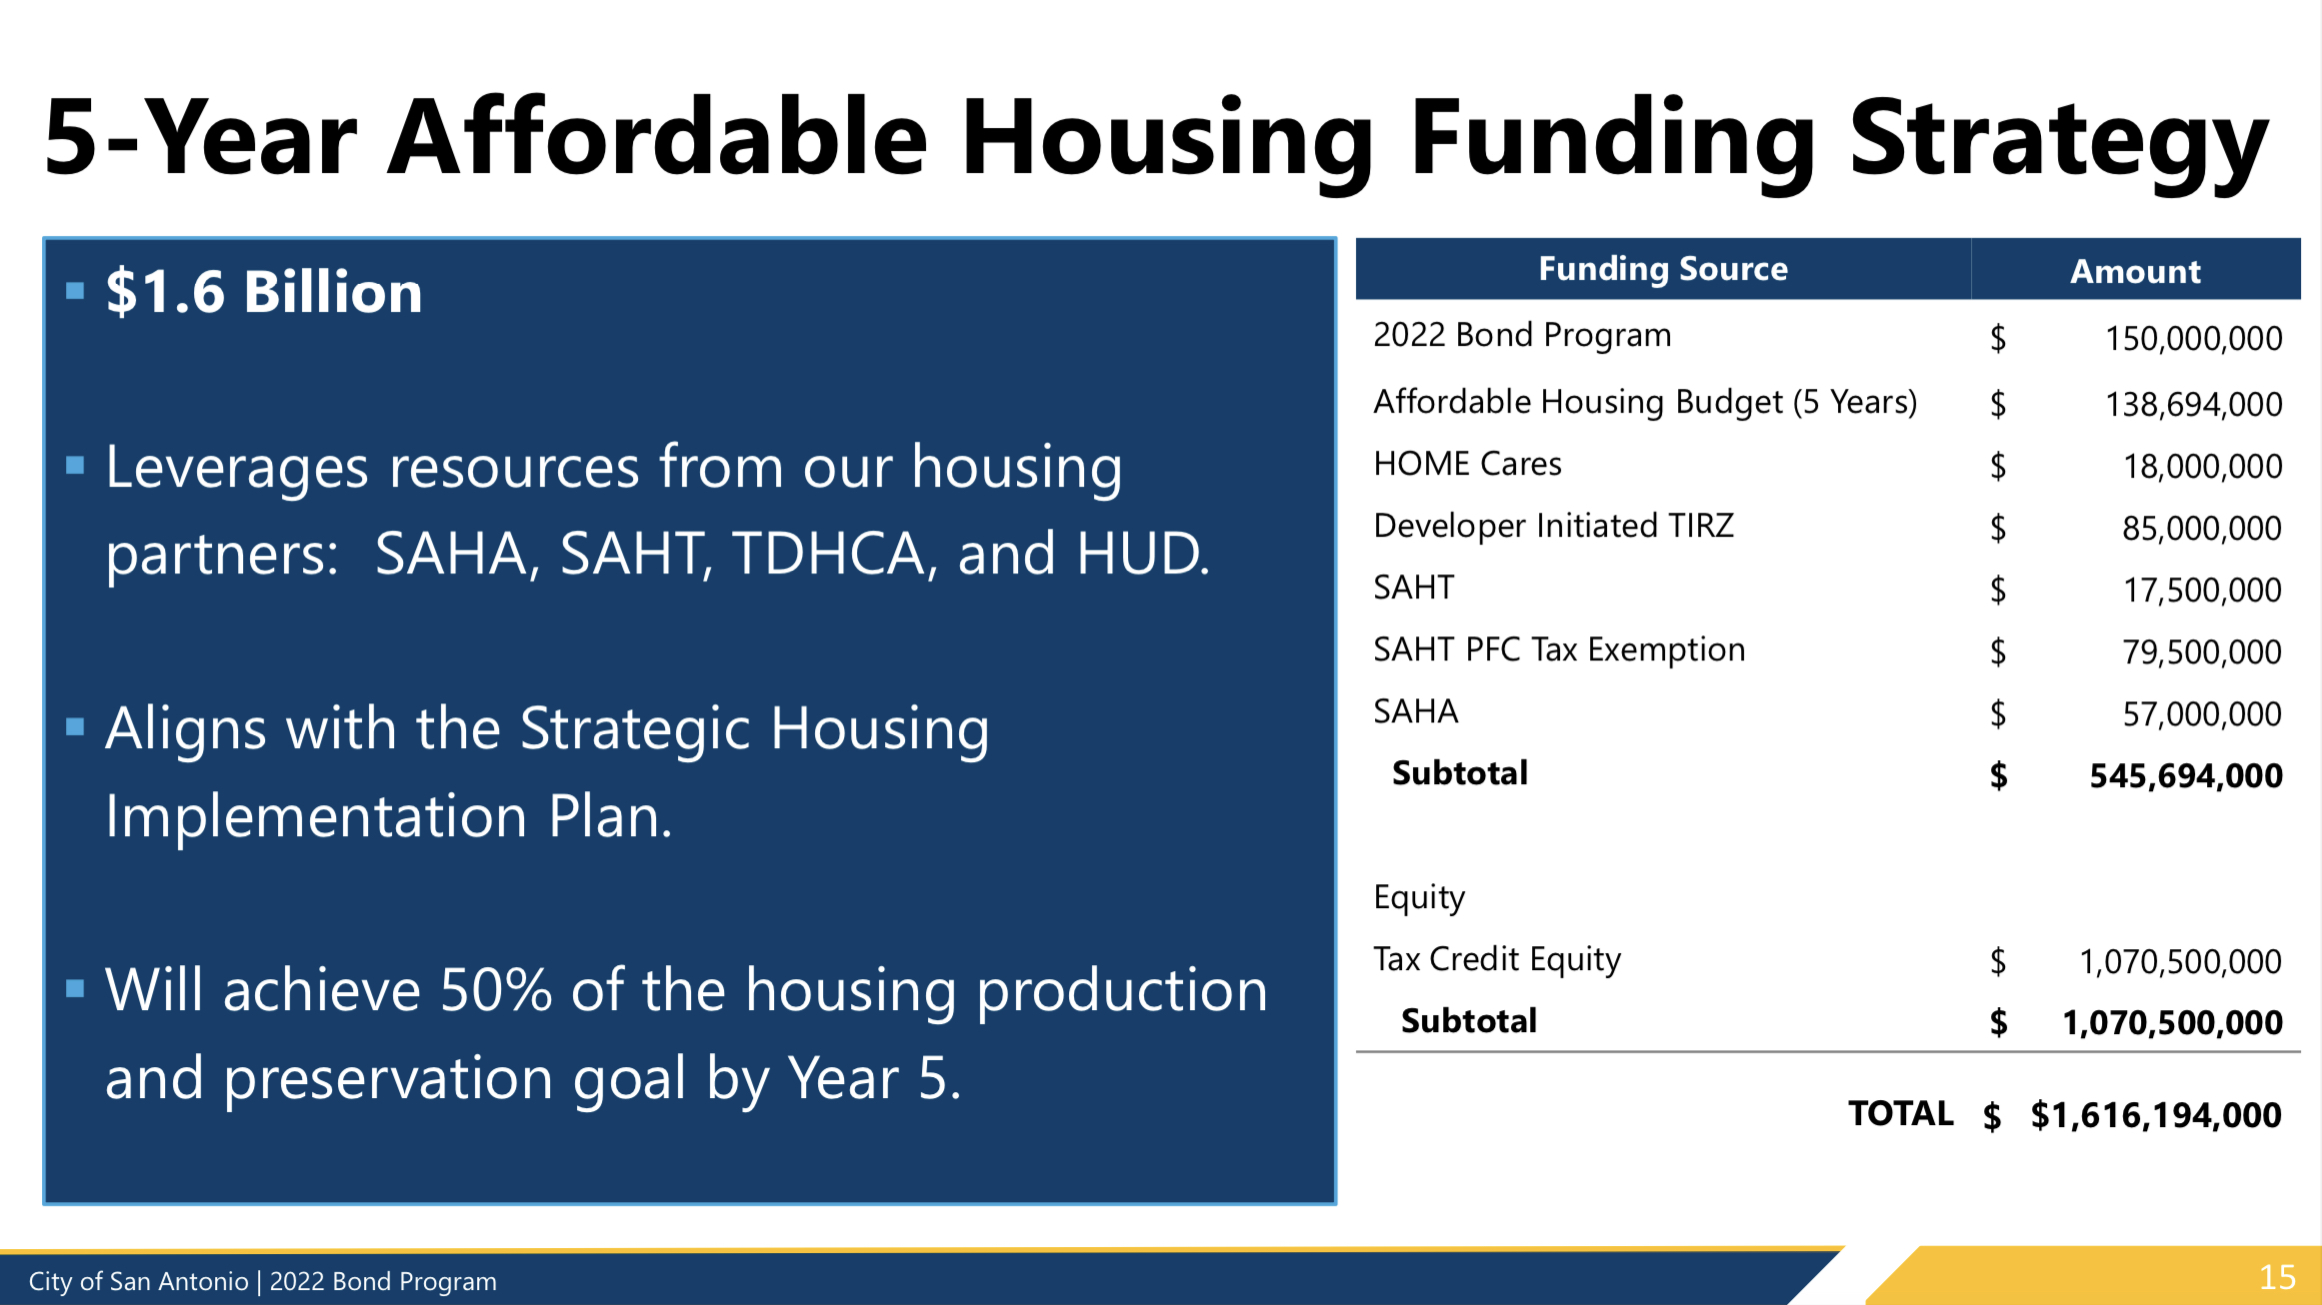 5-Year Affordable Housing Funding Strategy